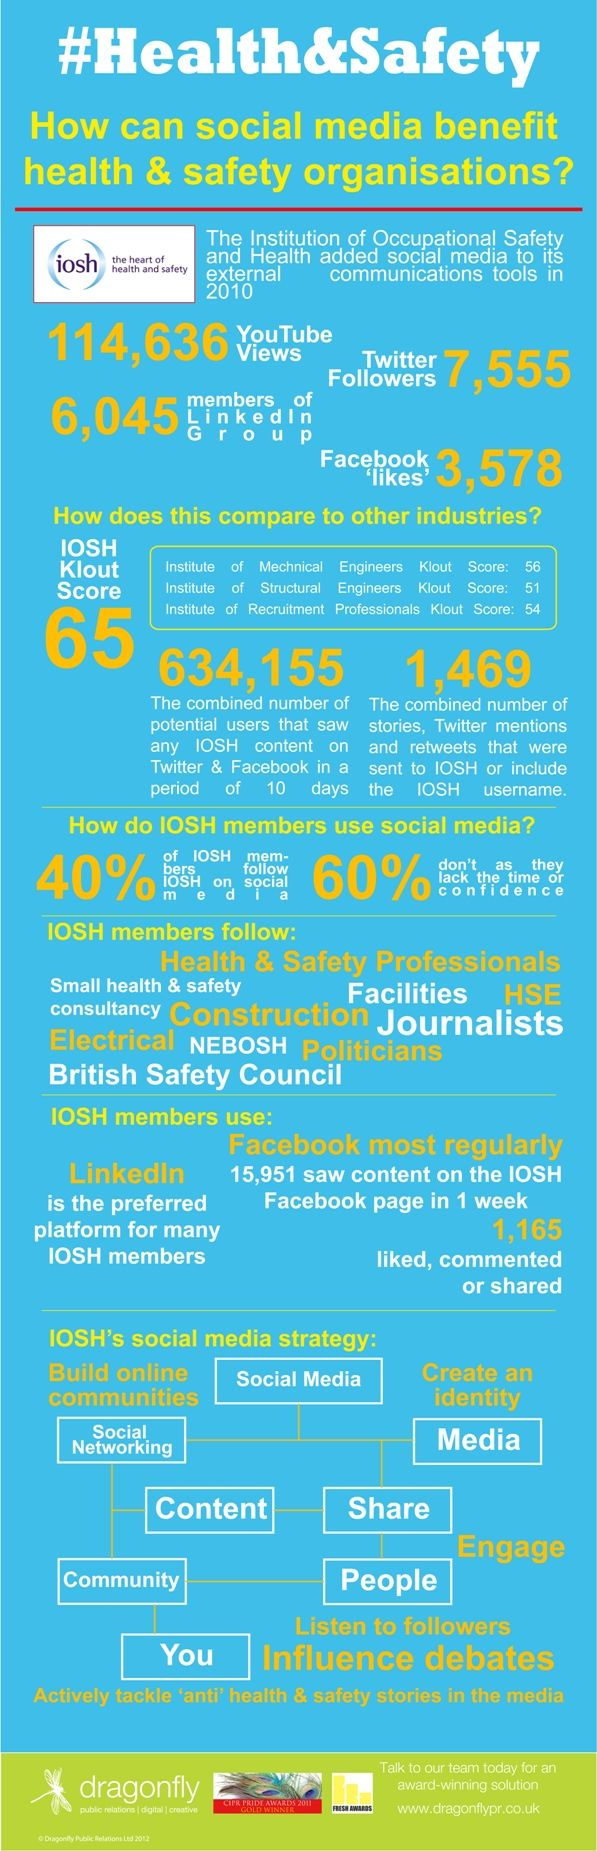 How can social media benefit health & safety organisations #infographic